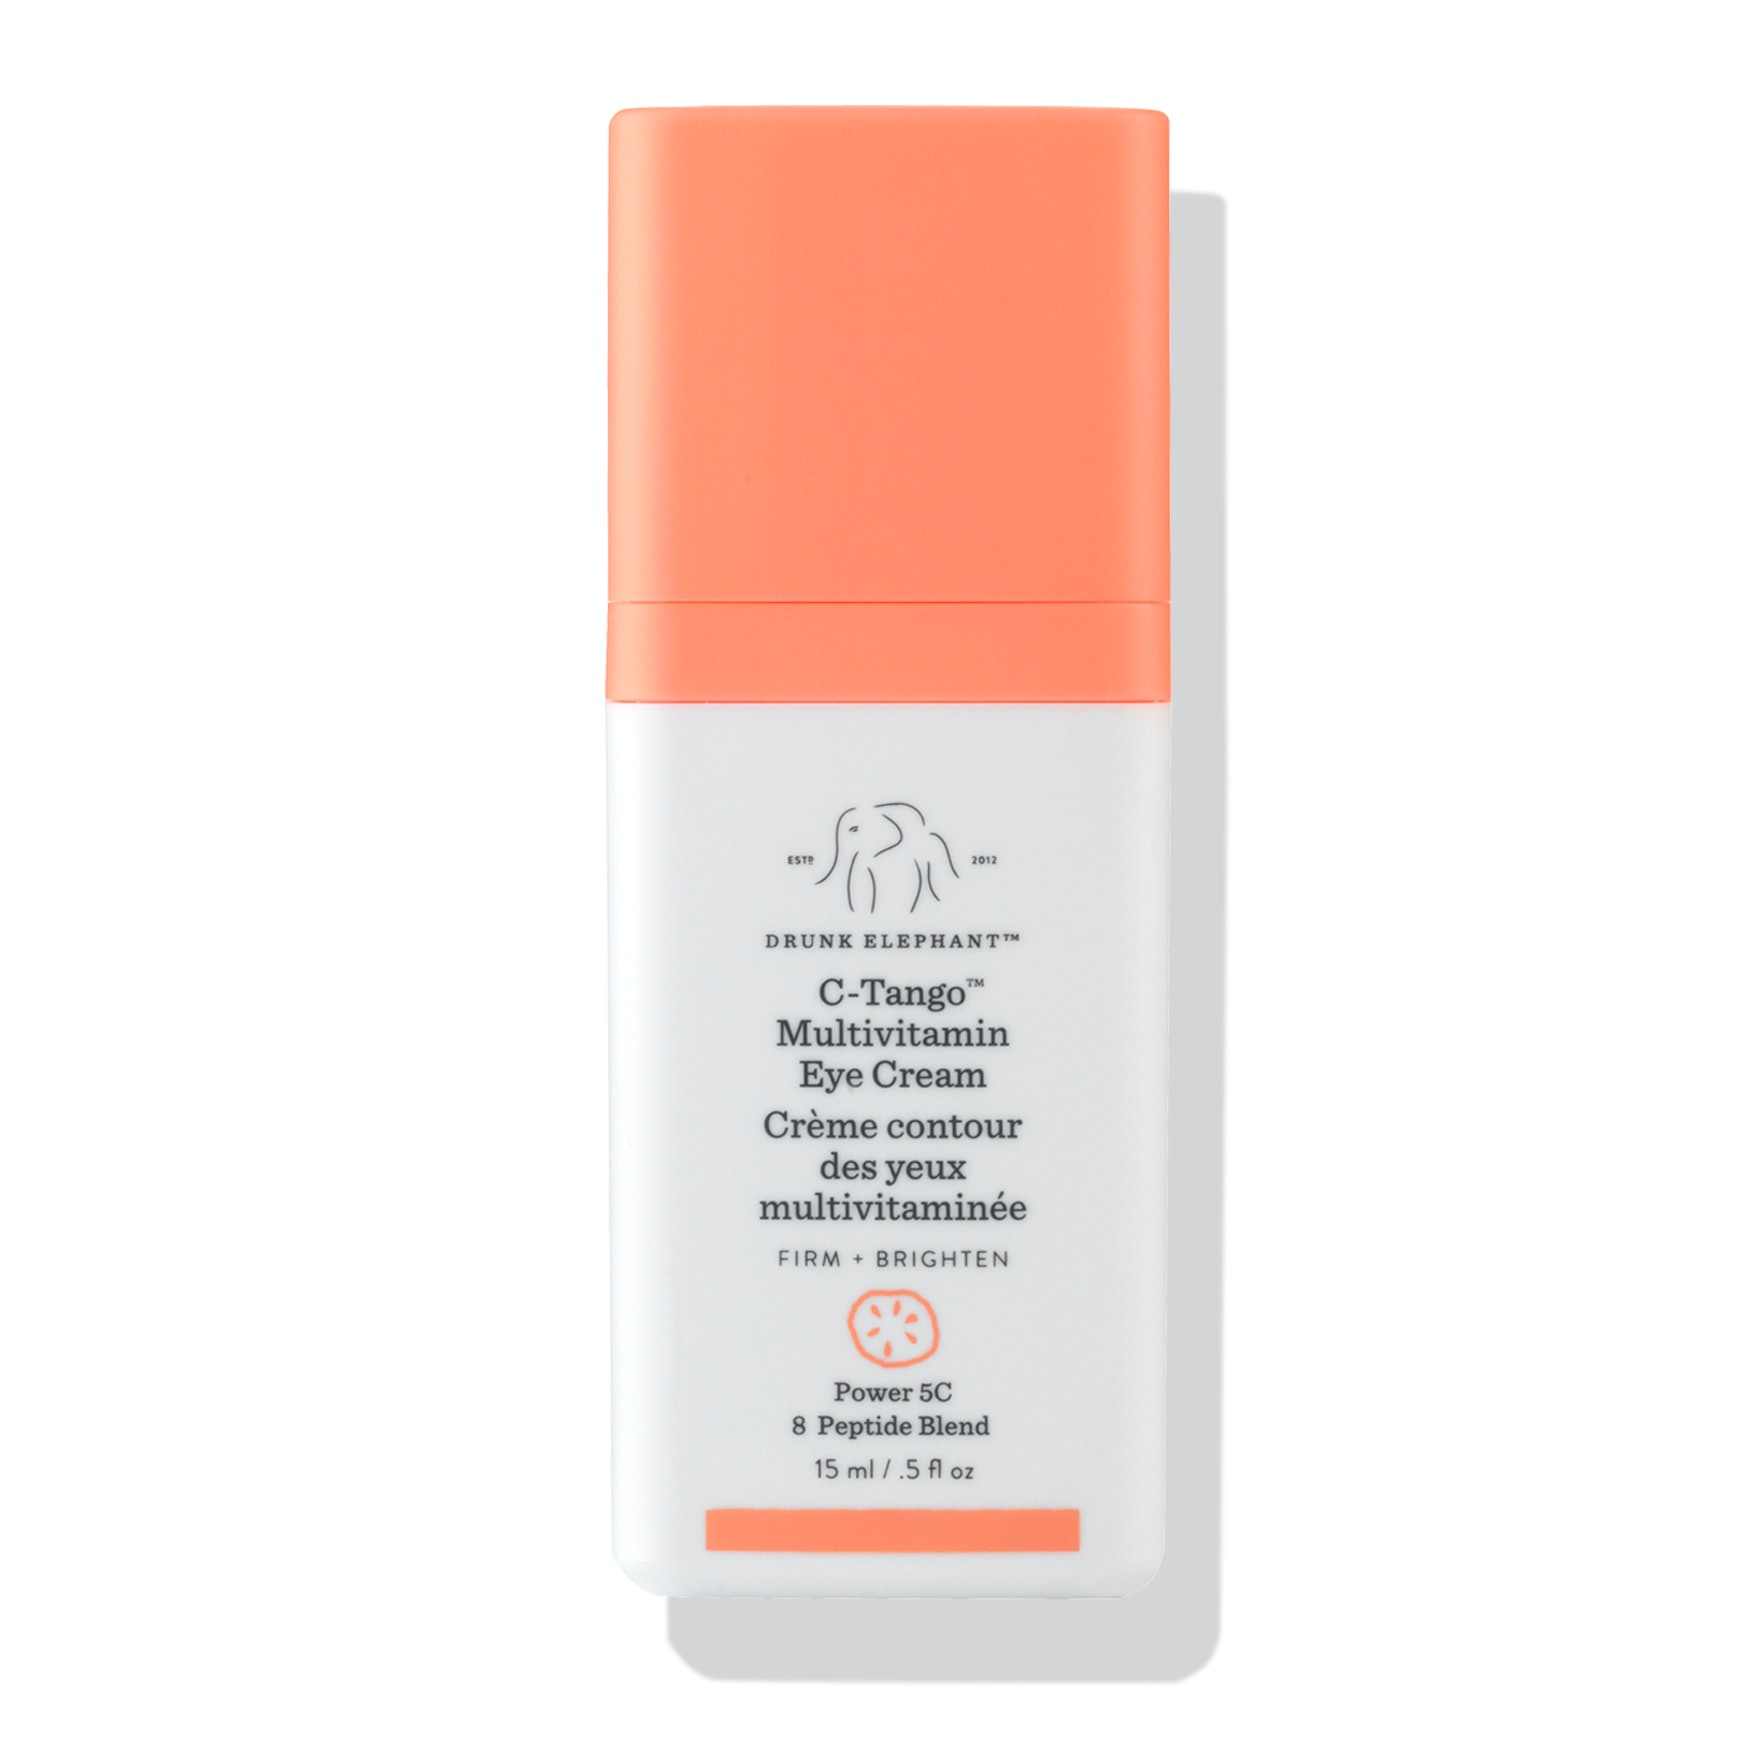 The Best Drunk Elephant Products That Dermatologists Recommend